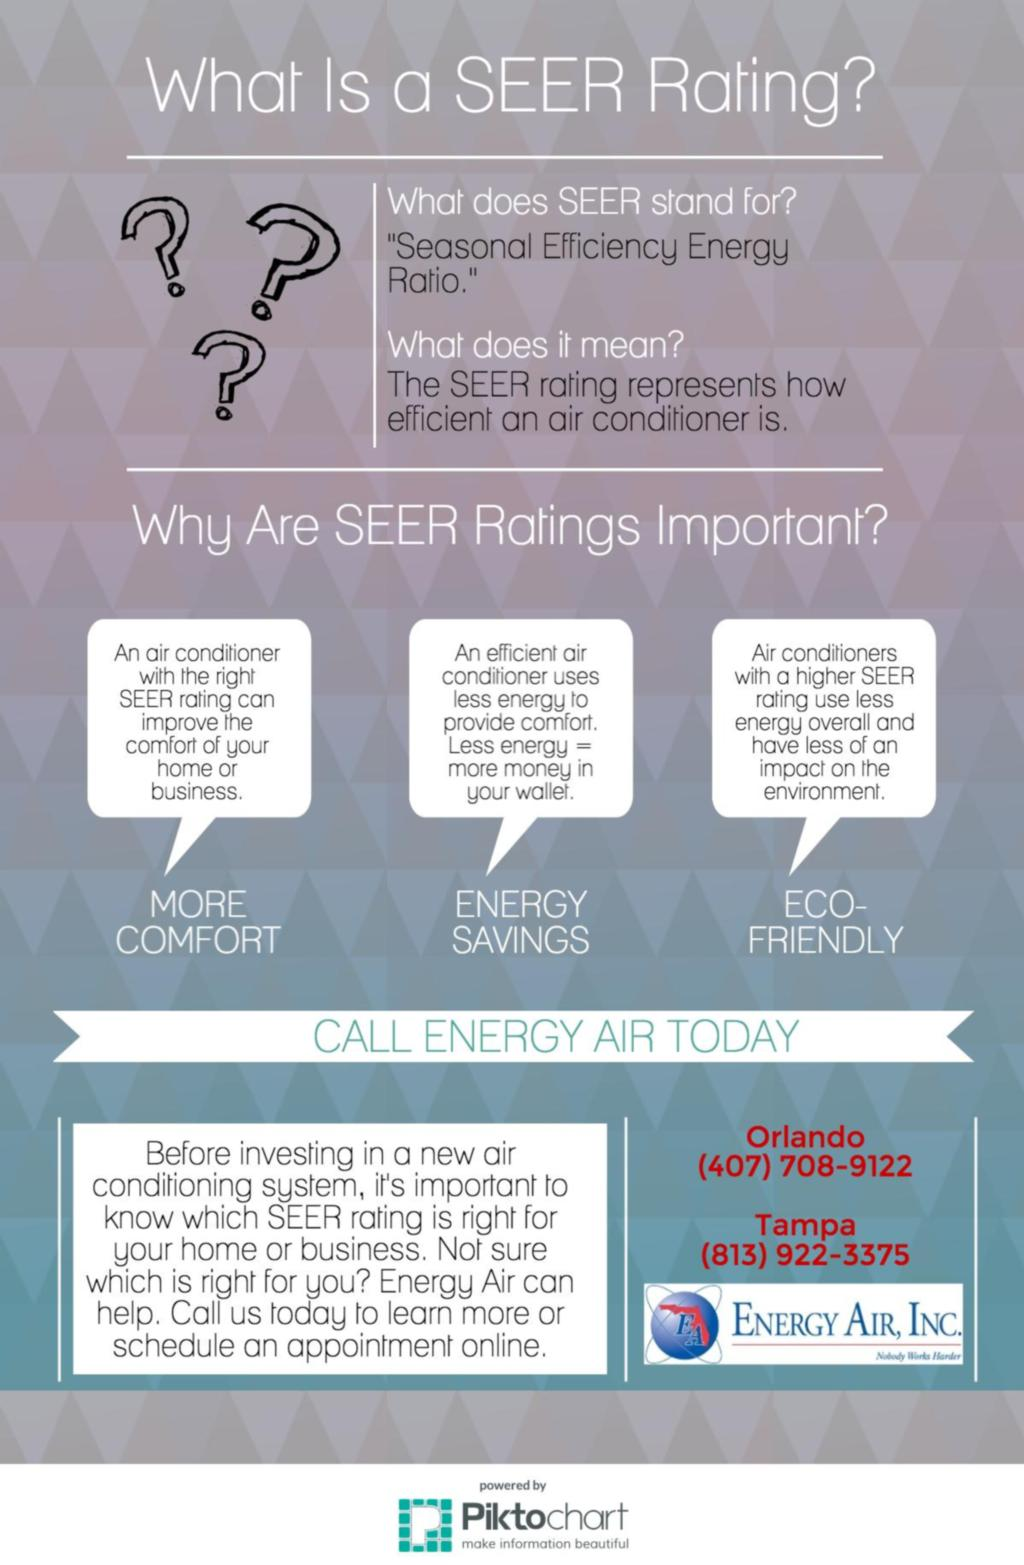 What Is a SEER Rating?